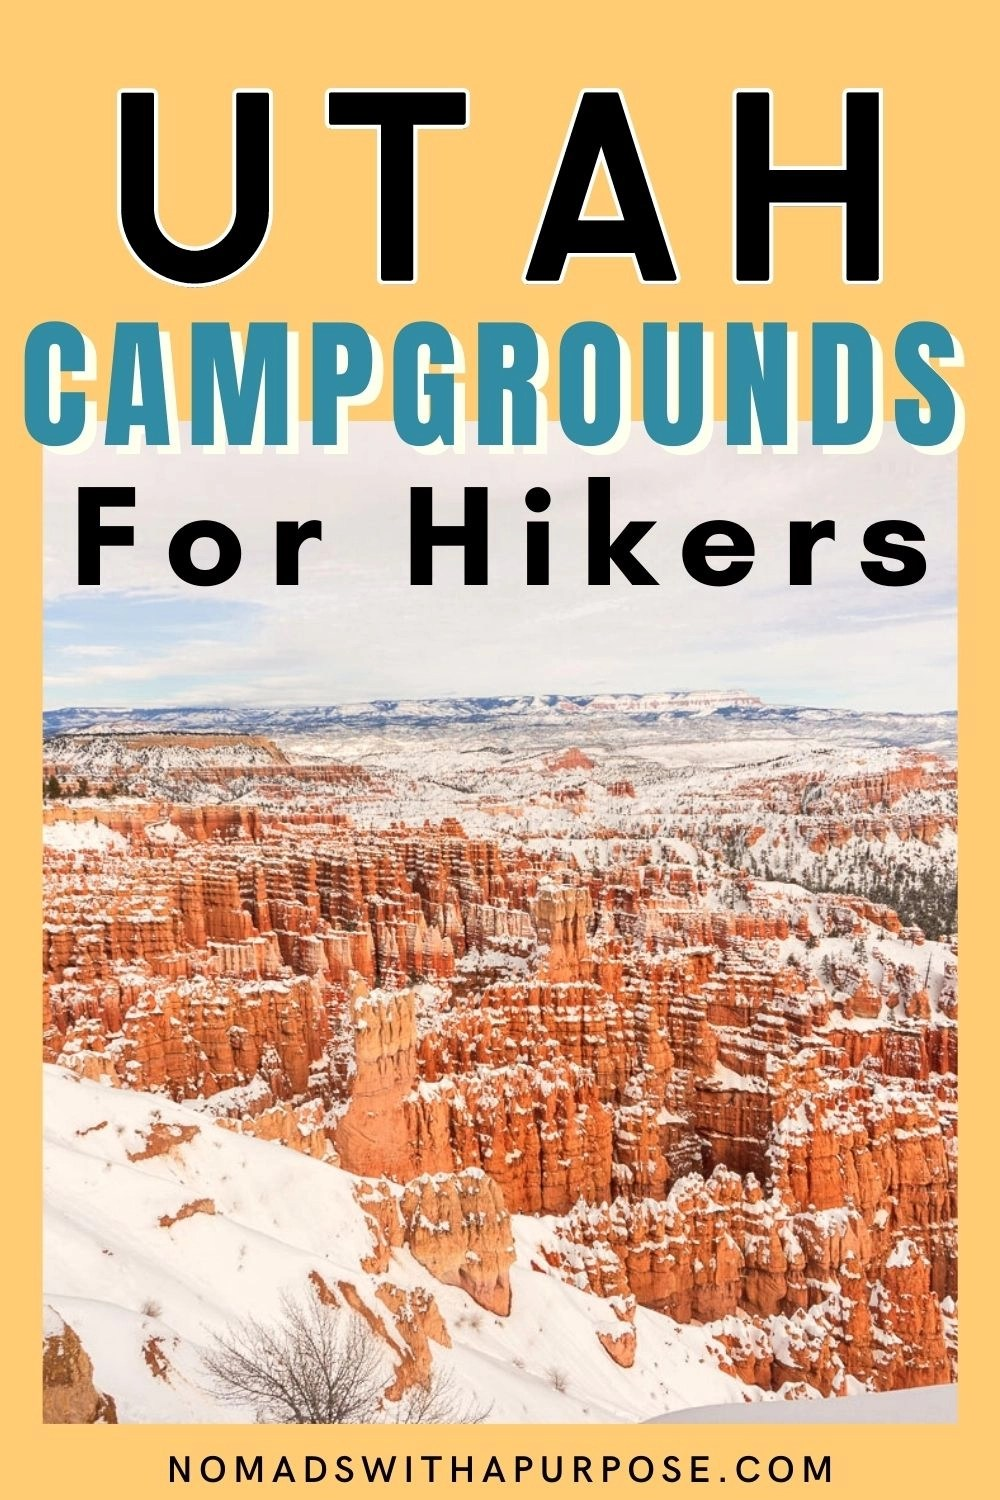 Utah Campgrounds for Hikers